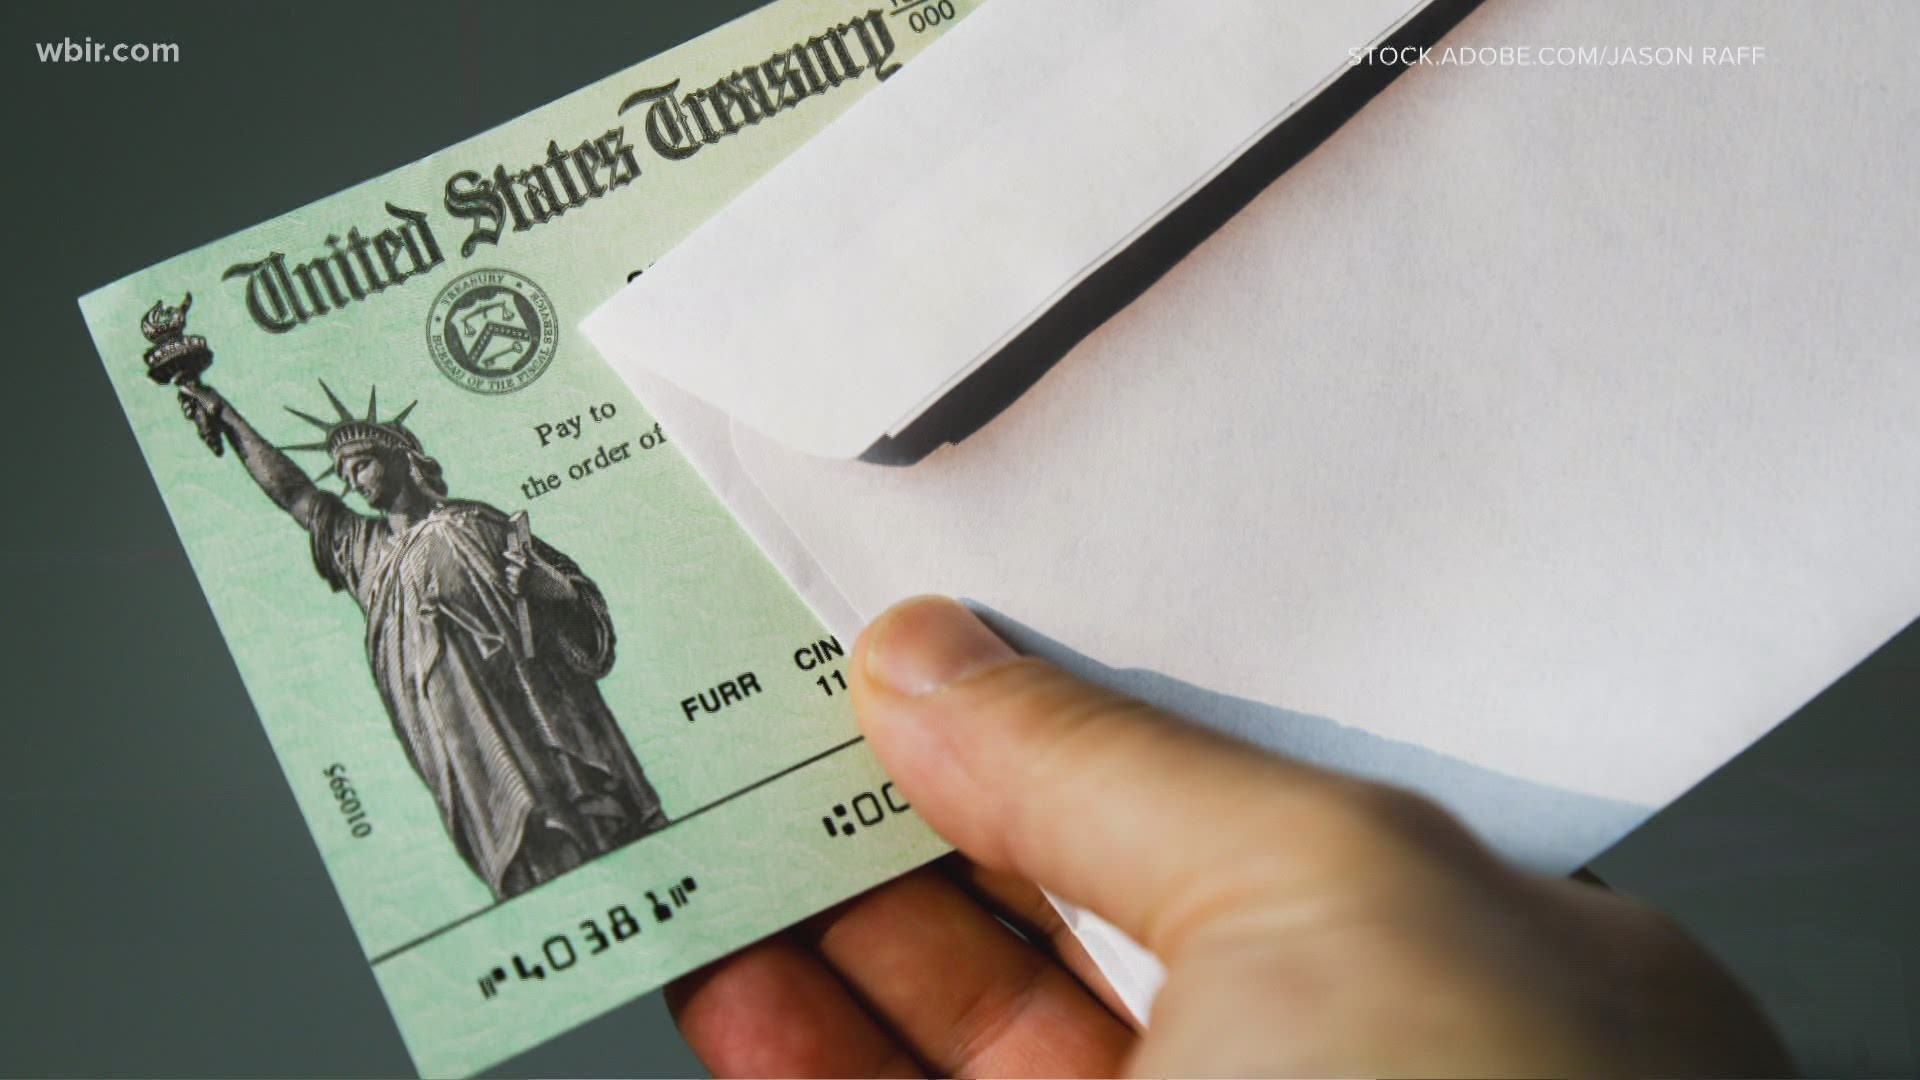 Third stimulus check update: How to track $1,400 payment status - khou.com